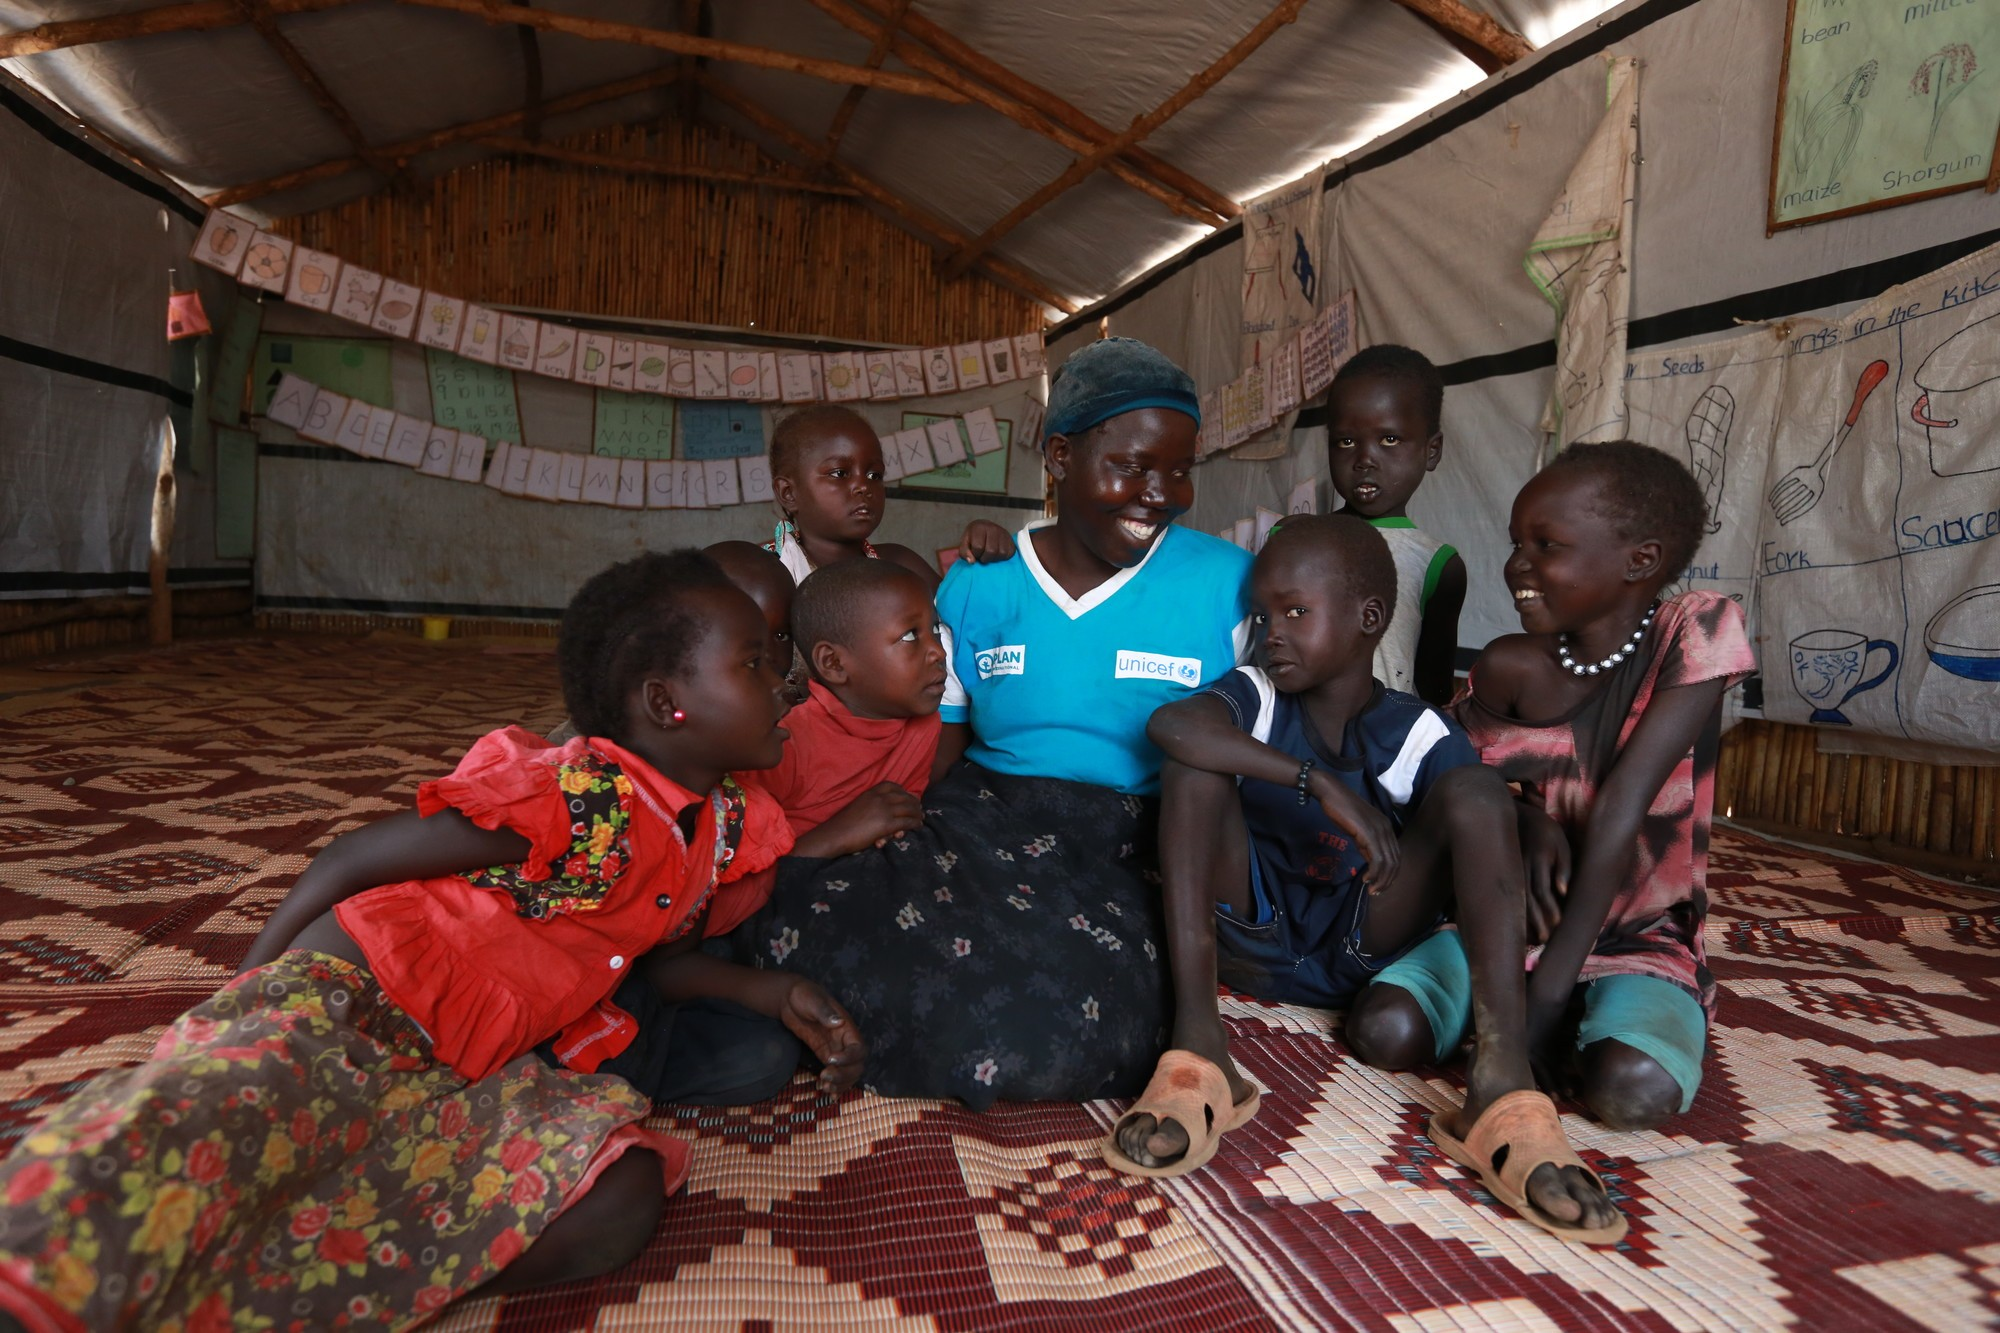 Halima, a volunteer in the South Sudan Early Childhood Care and Development